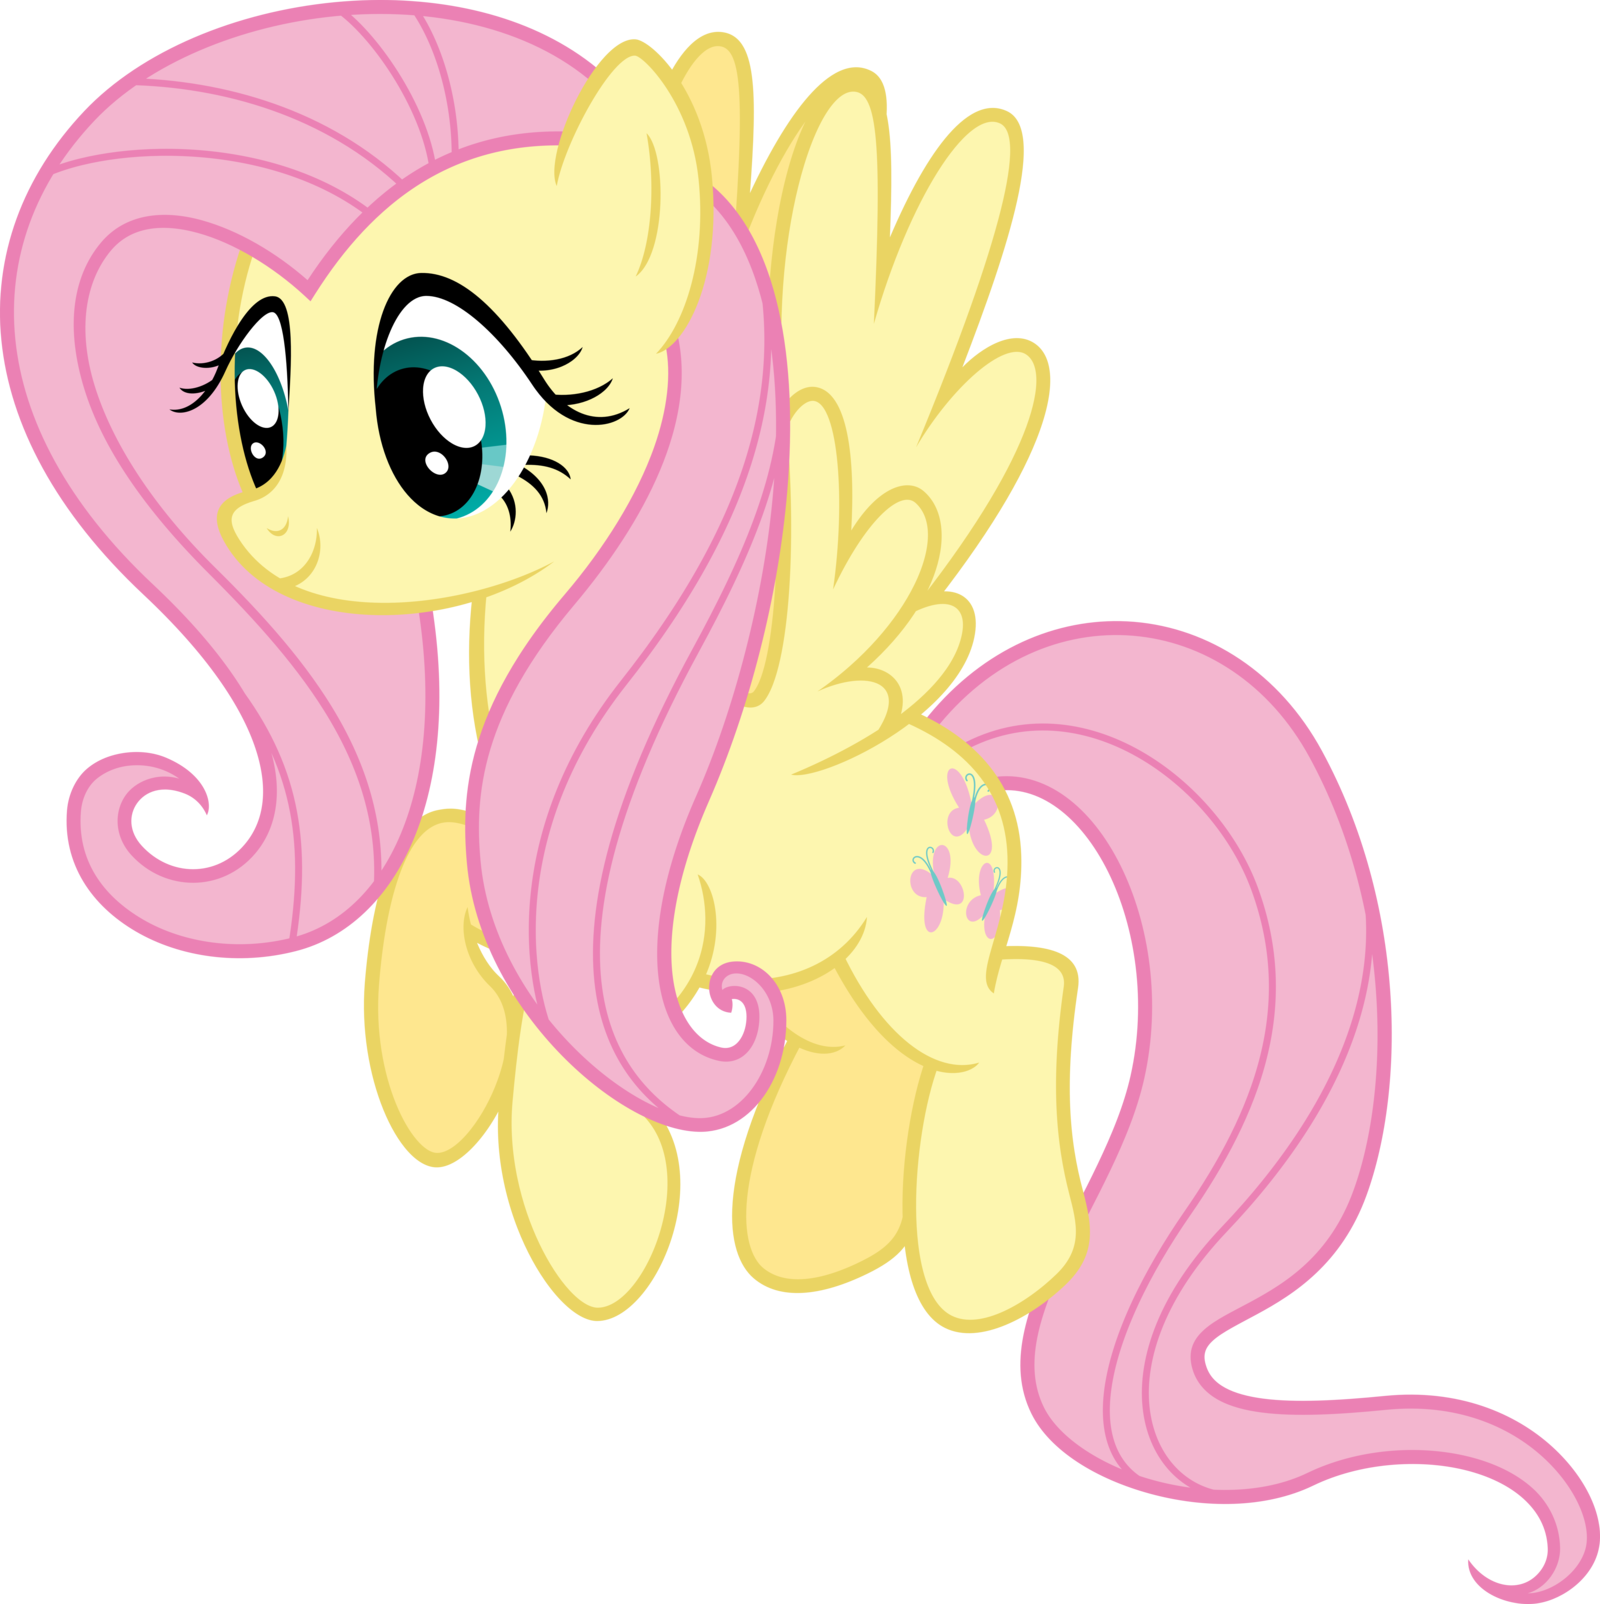 What does Fluttershy think of you?